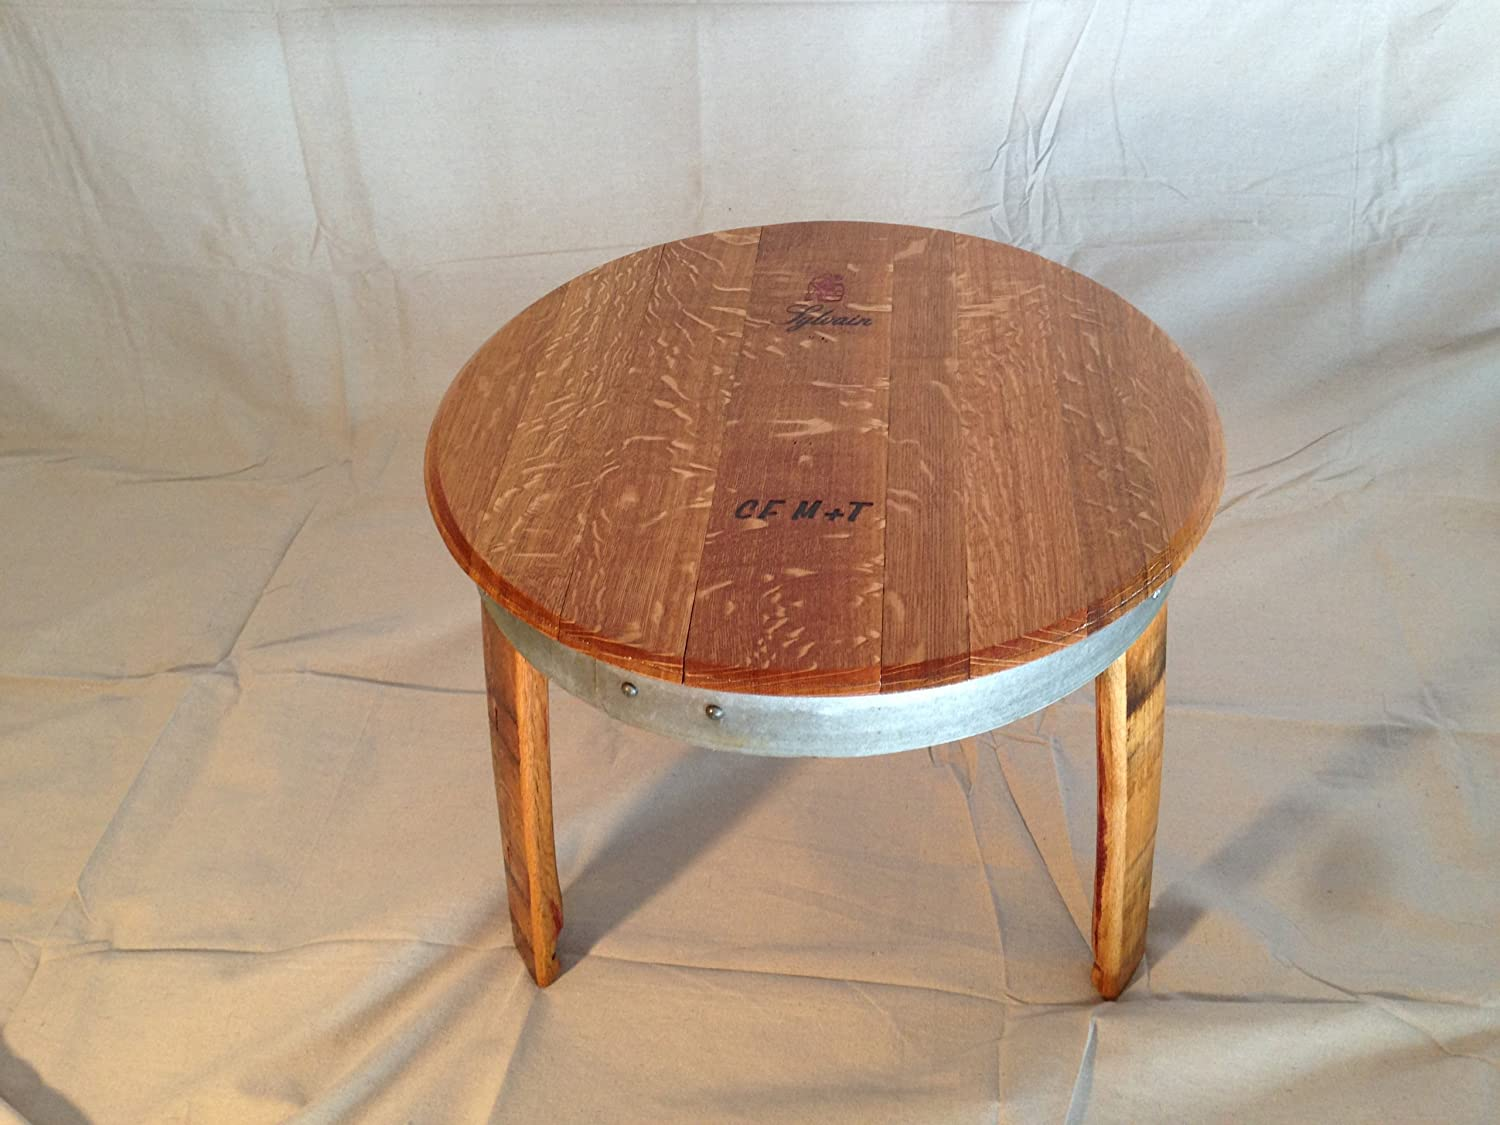 Amazon.com : Wine Barrel Table : Patio Side Tables : Garden \u0026 Outdoor